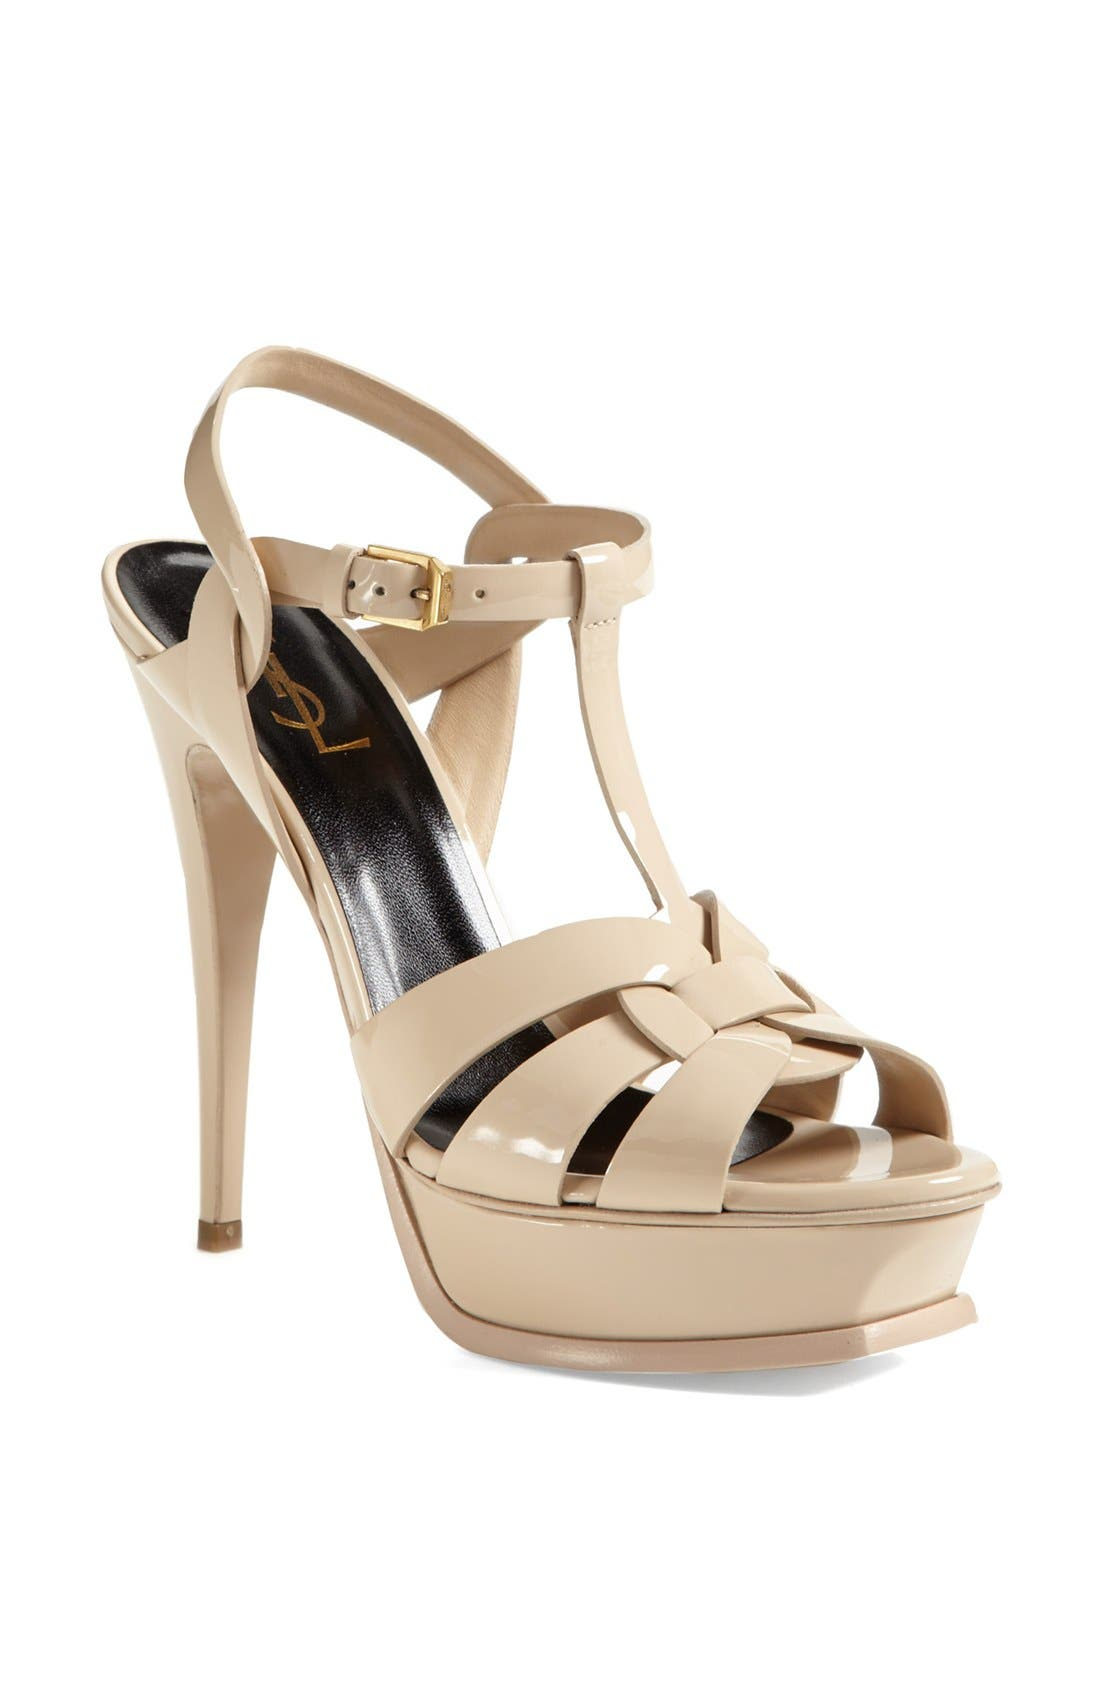 Alternate Image 1 Selected - Saint Laurent Tribute T-Strap Platform Sandal (Women)